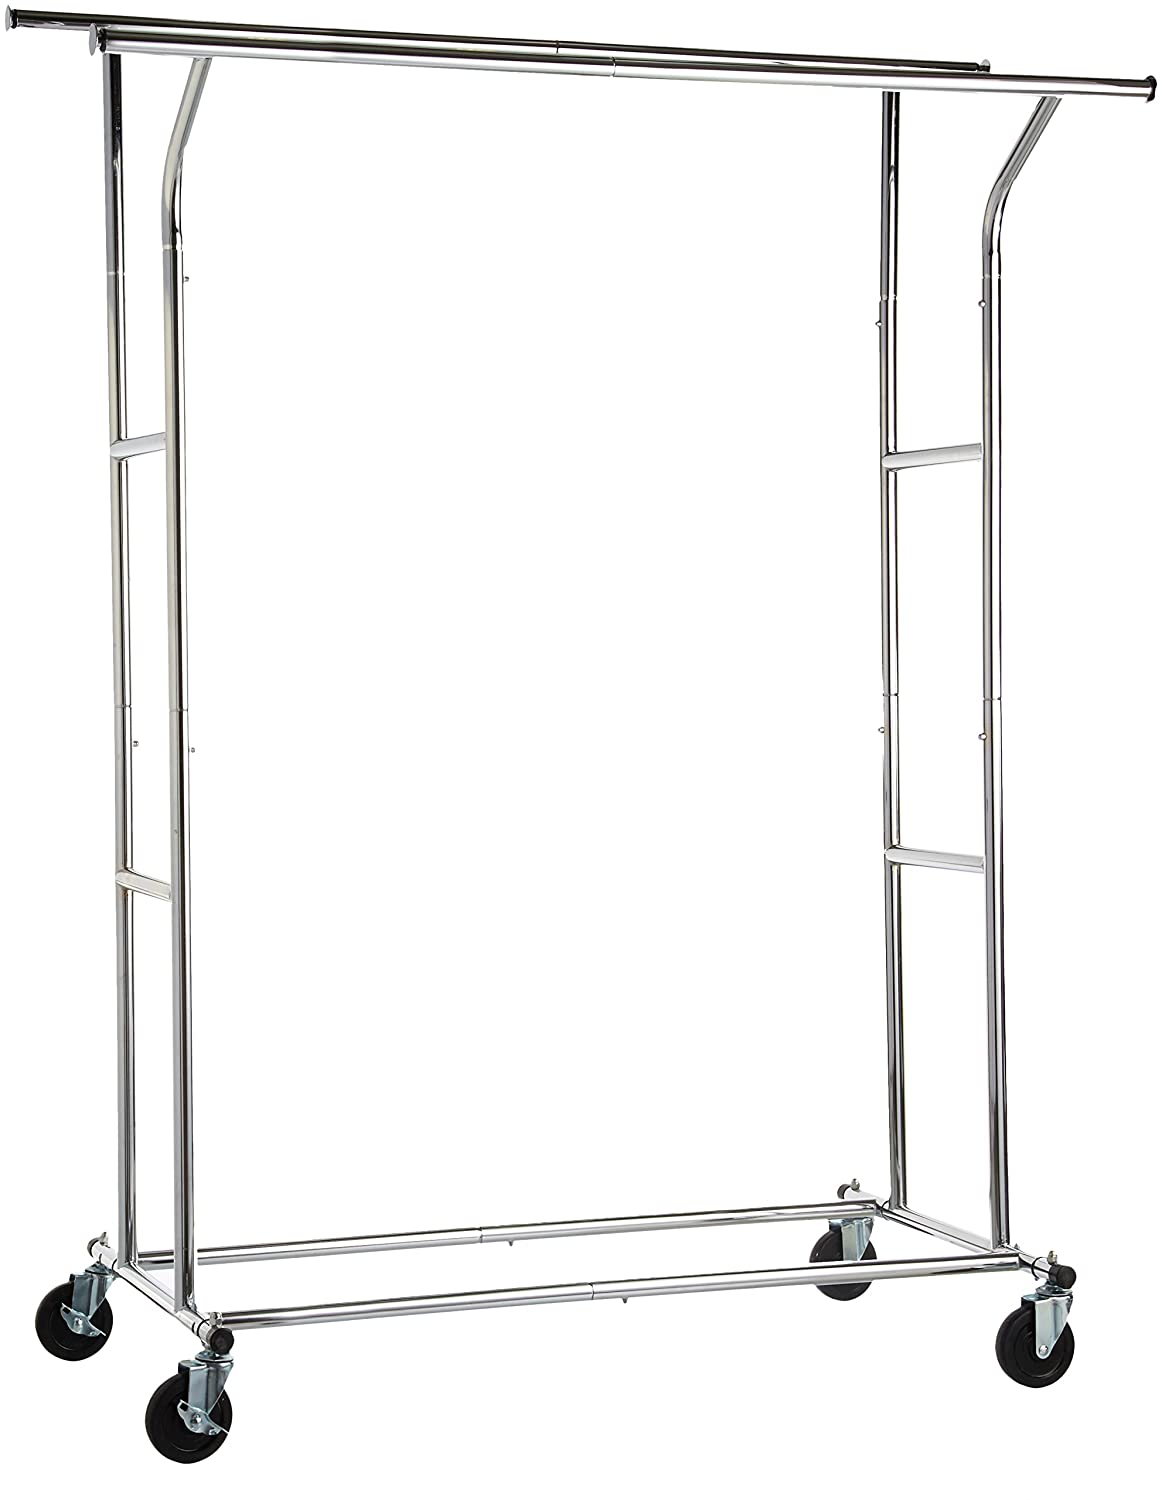 AmazonBasics Rolling Double Rail Clothing Garment Rack on Wheels